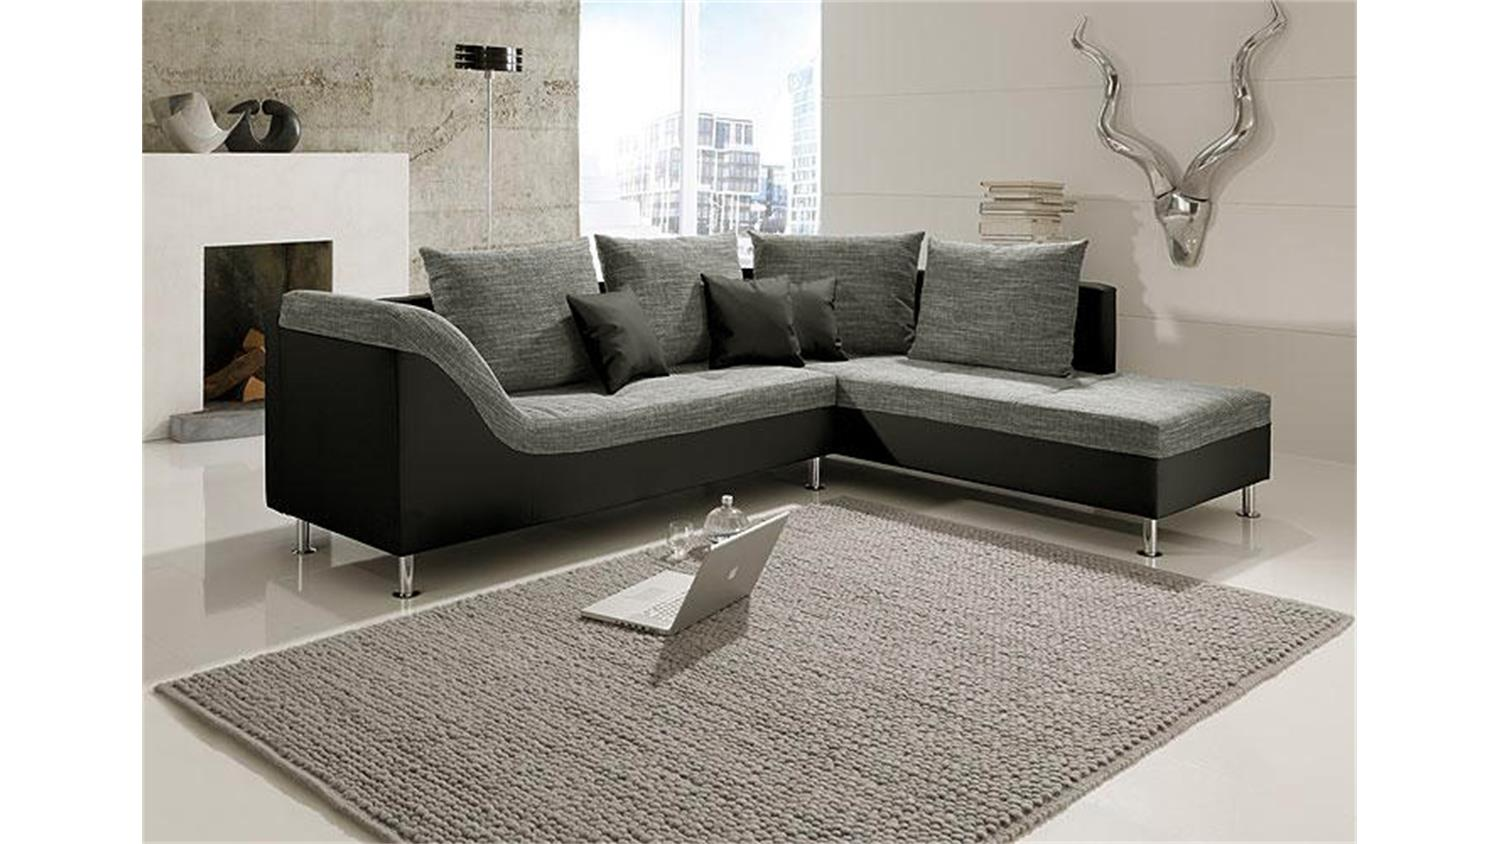 ecksofa philip schwarz und grauem stoff mit ottomane rechts. Black Bedroom Furniture Sets. Home Design Ideas